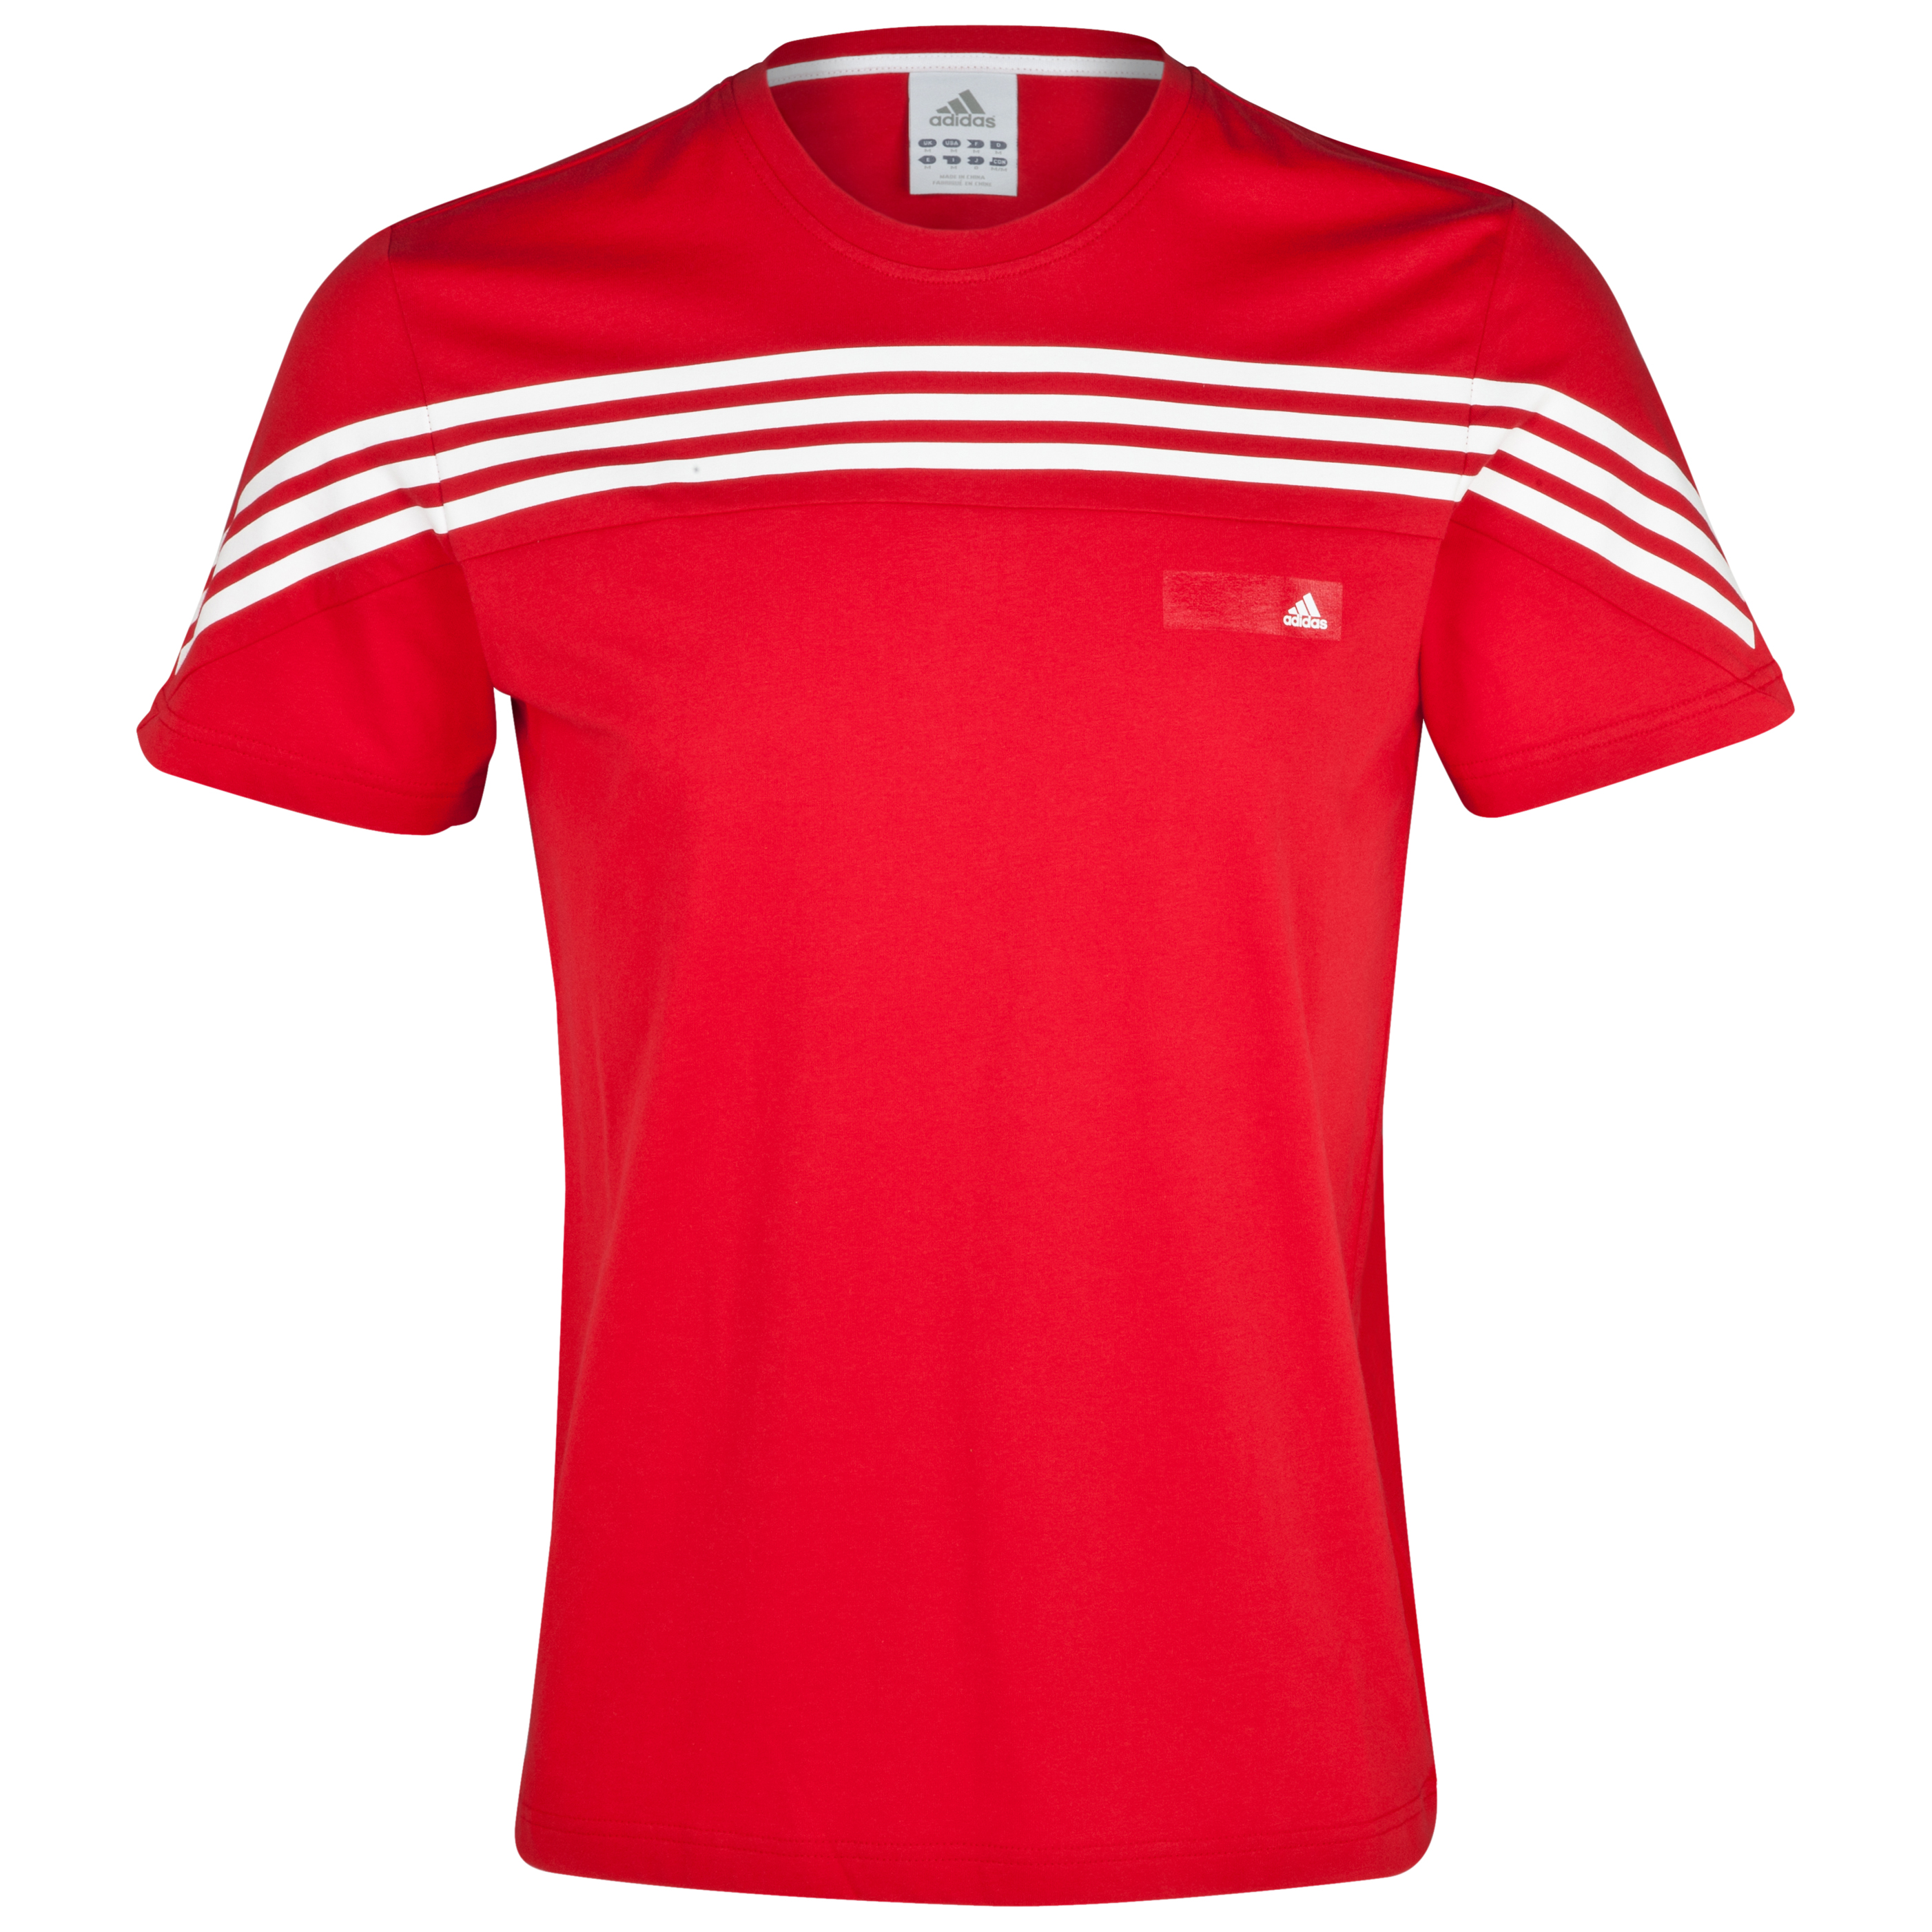 adidas 3 Stripe Short Sleeve T-Shirt - Red S09/White